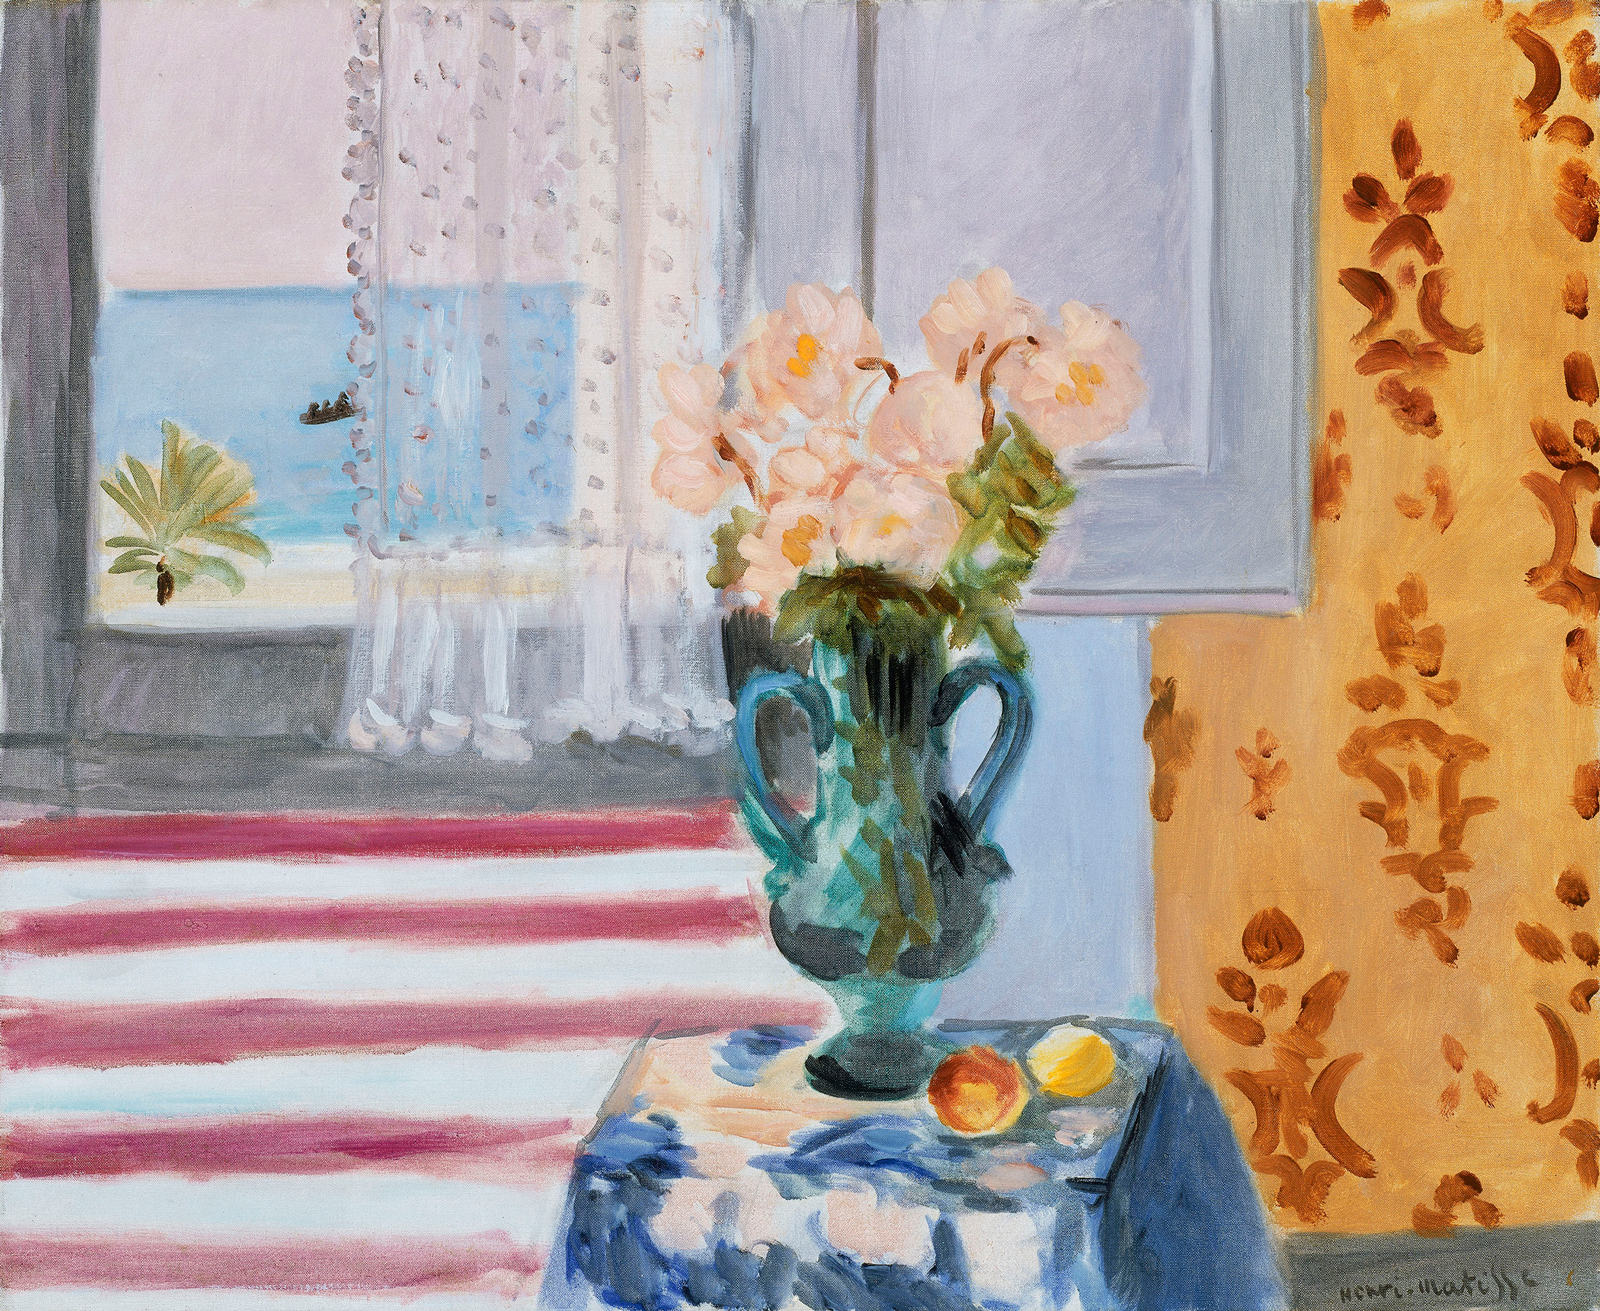 A passion for the mundane. A scuffed old bread knife, a glass vase, a coffee table — ordinary objects delighted, inspired, and confounded Matisse